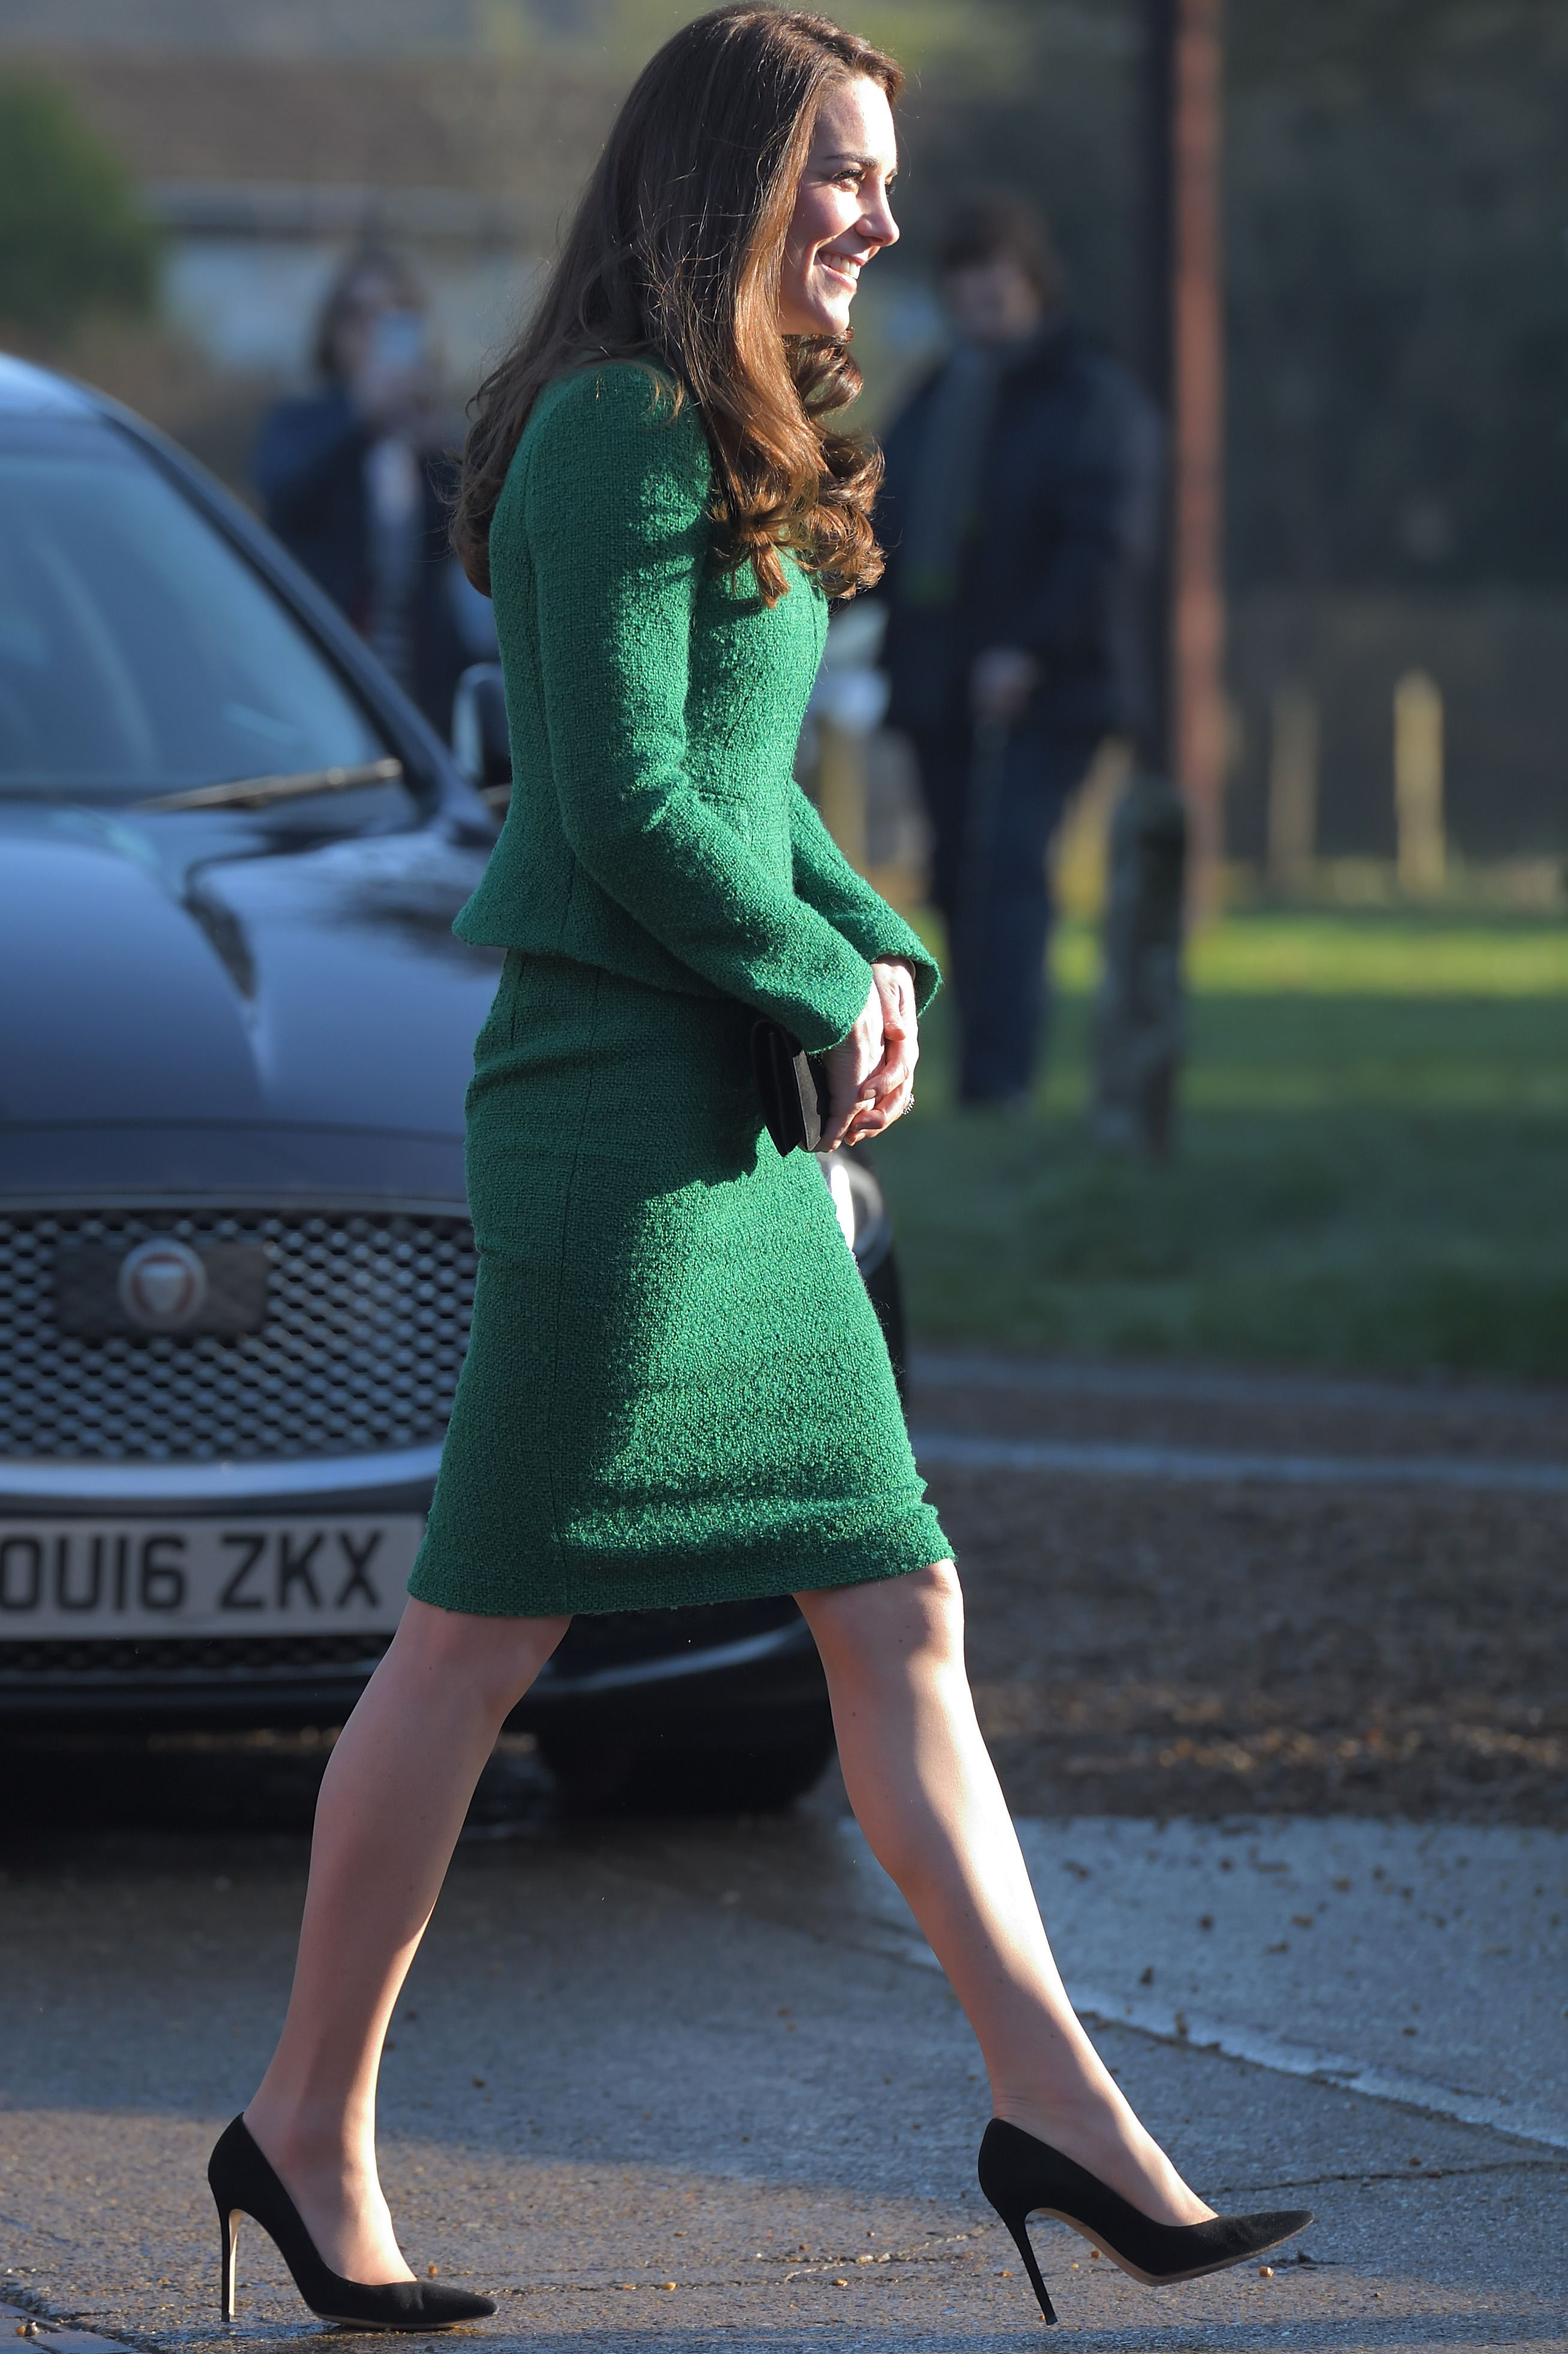 """Shop Now Gianvito Rossi """"Gianvito 105"""" Pumps in Black Suede, $675 In addition to her L.K. Bennett heels, Duchess Kate also is a fan of Gianvito Rossi's """"Gianvito 105"""" pumps, which she's seen wearing here in black to the Nook Appeal at EACH in January  2017 in Norfolk, England."""